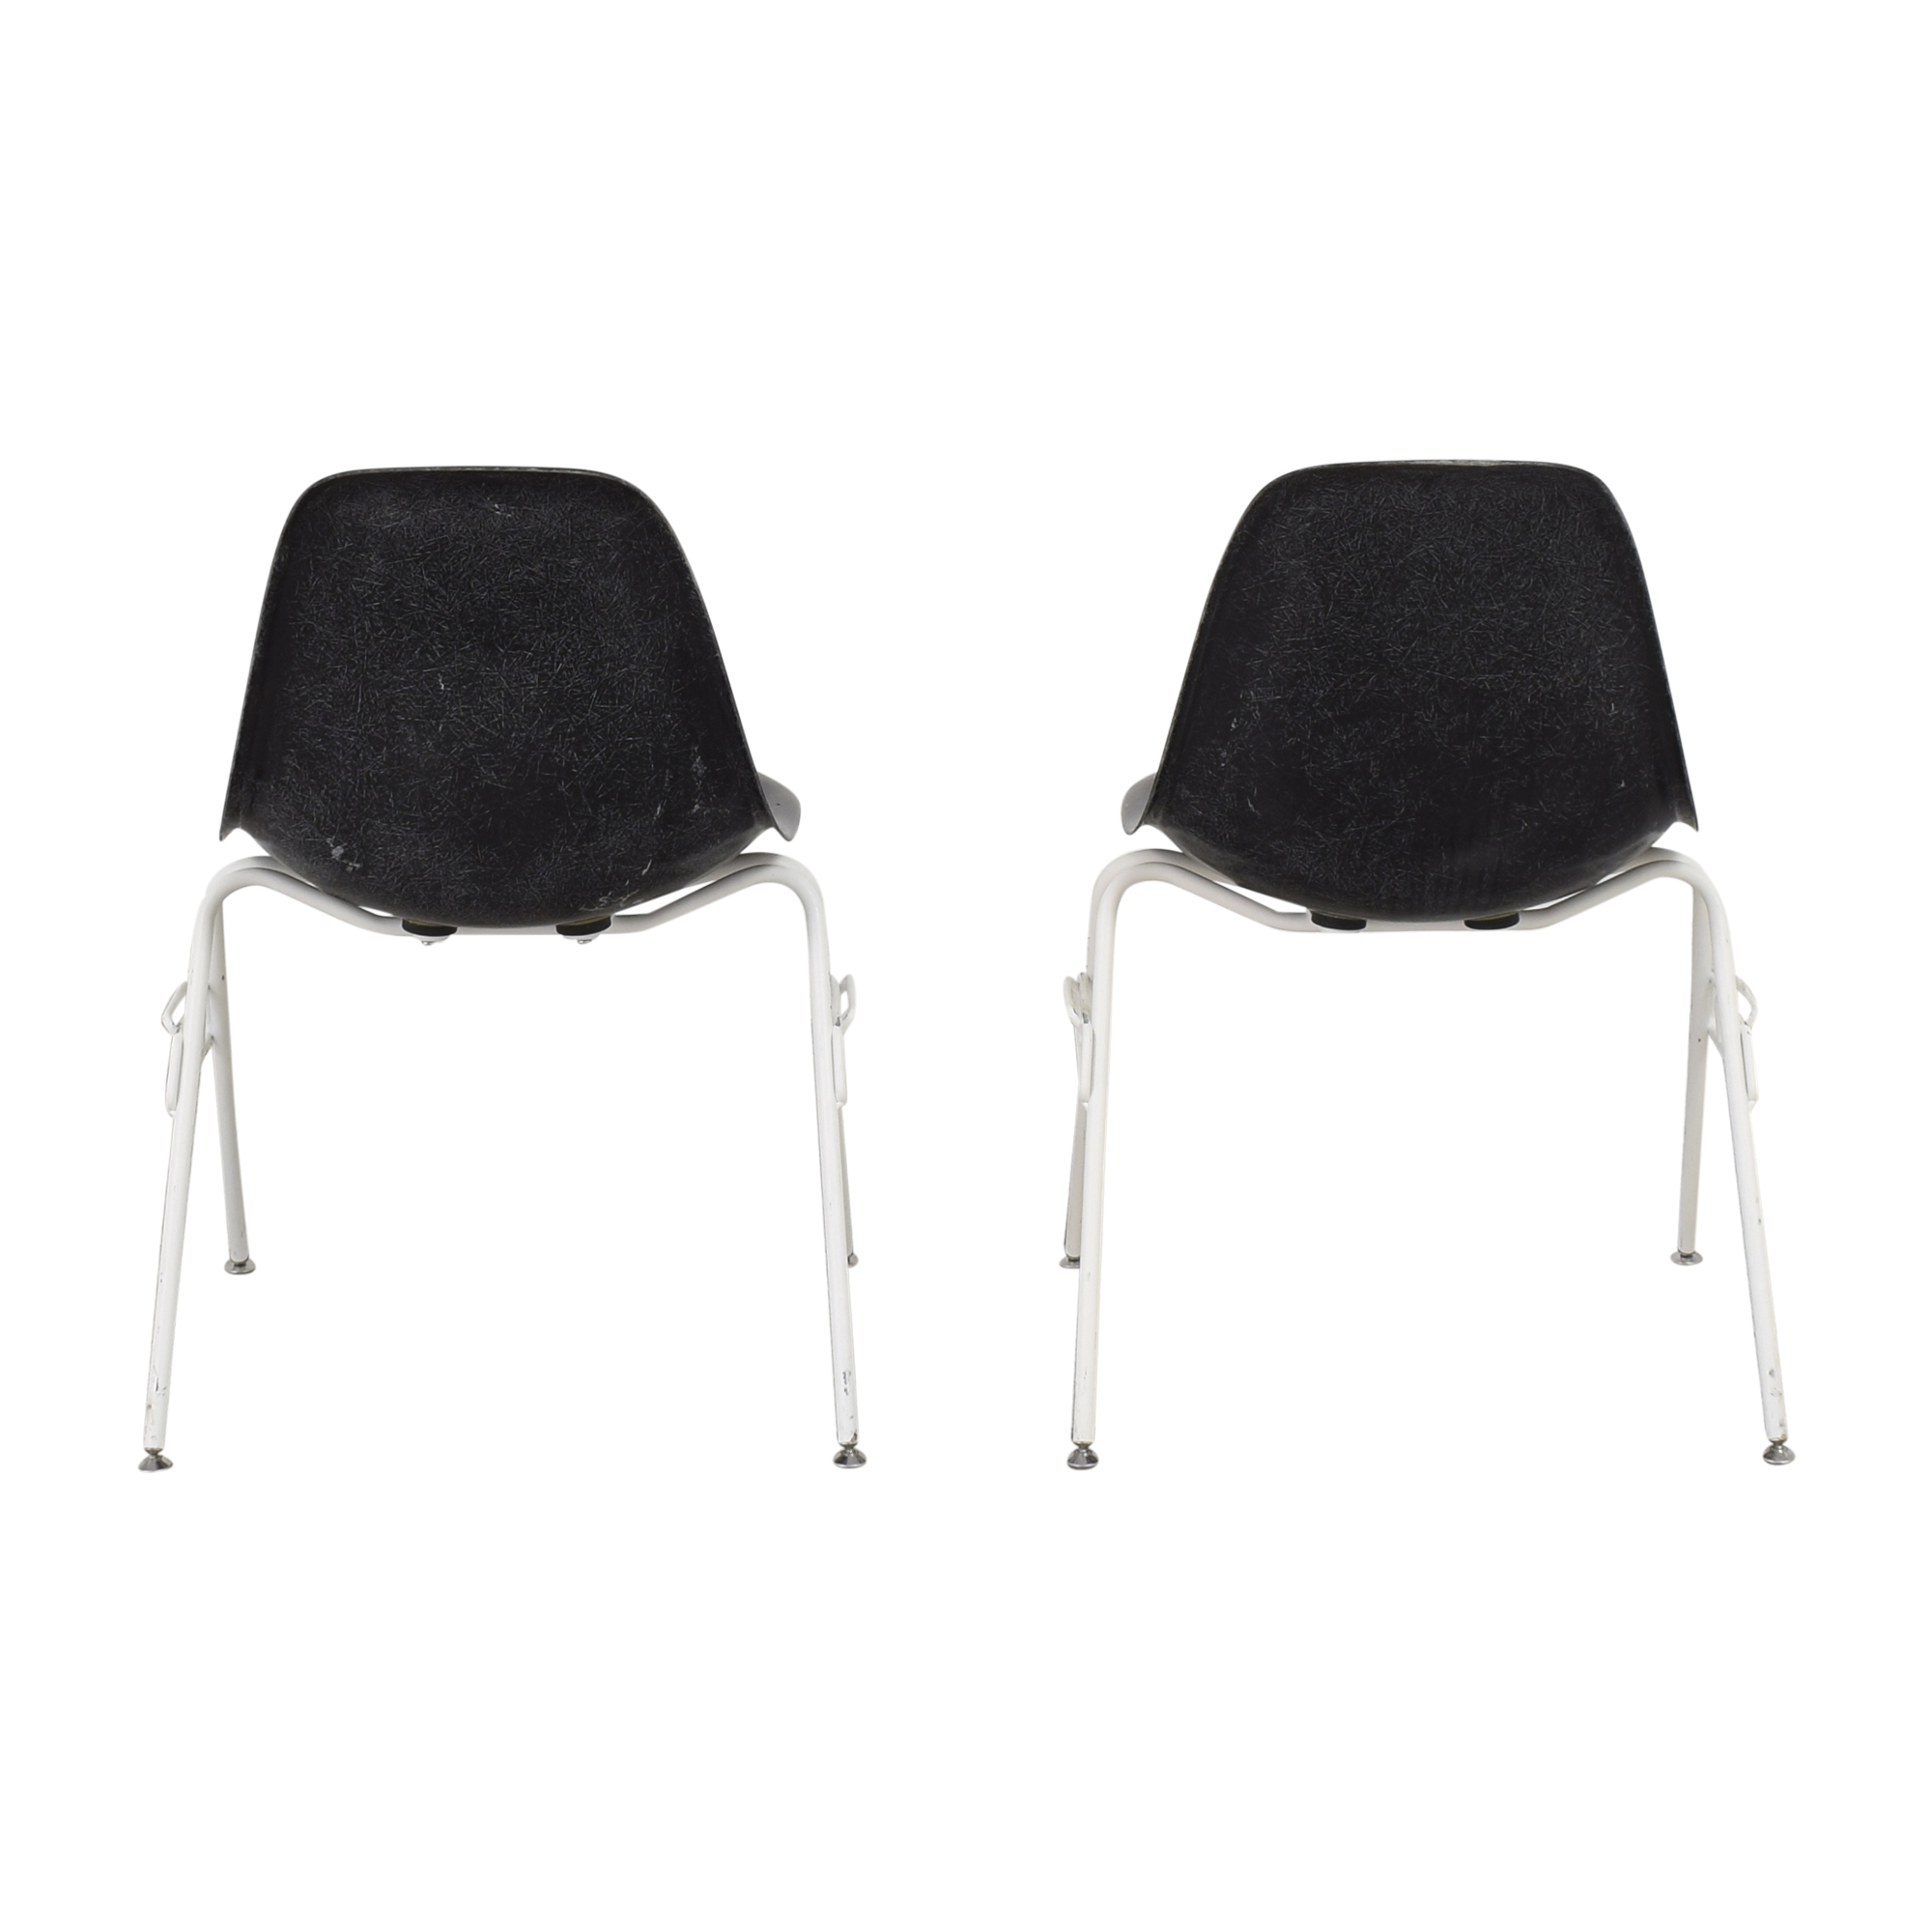 Modernica Modernica Case Study Furniture Side Shell Stacking Chairs second hand